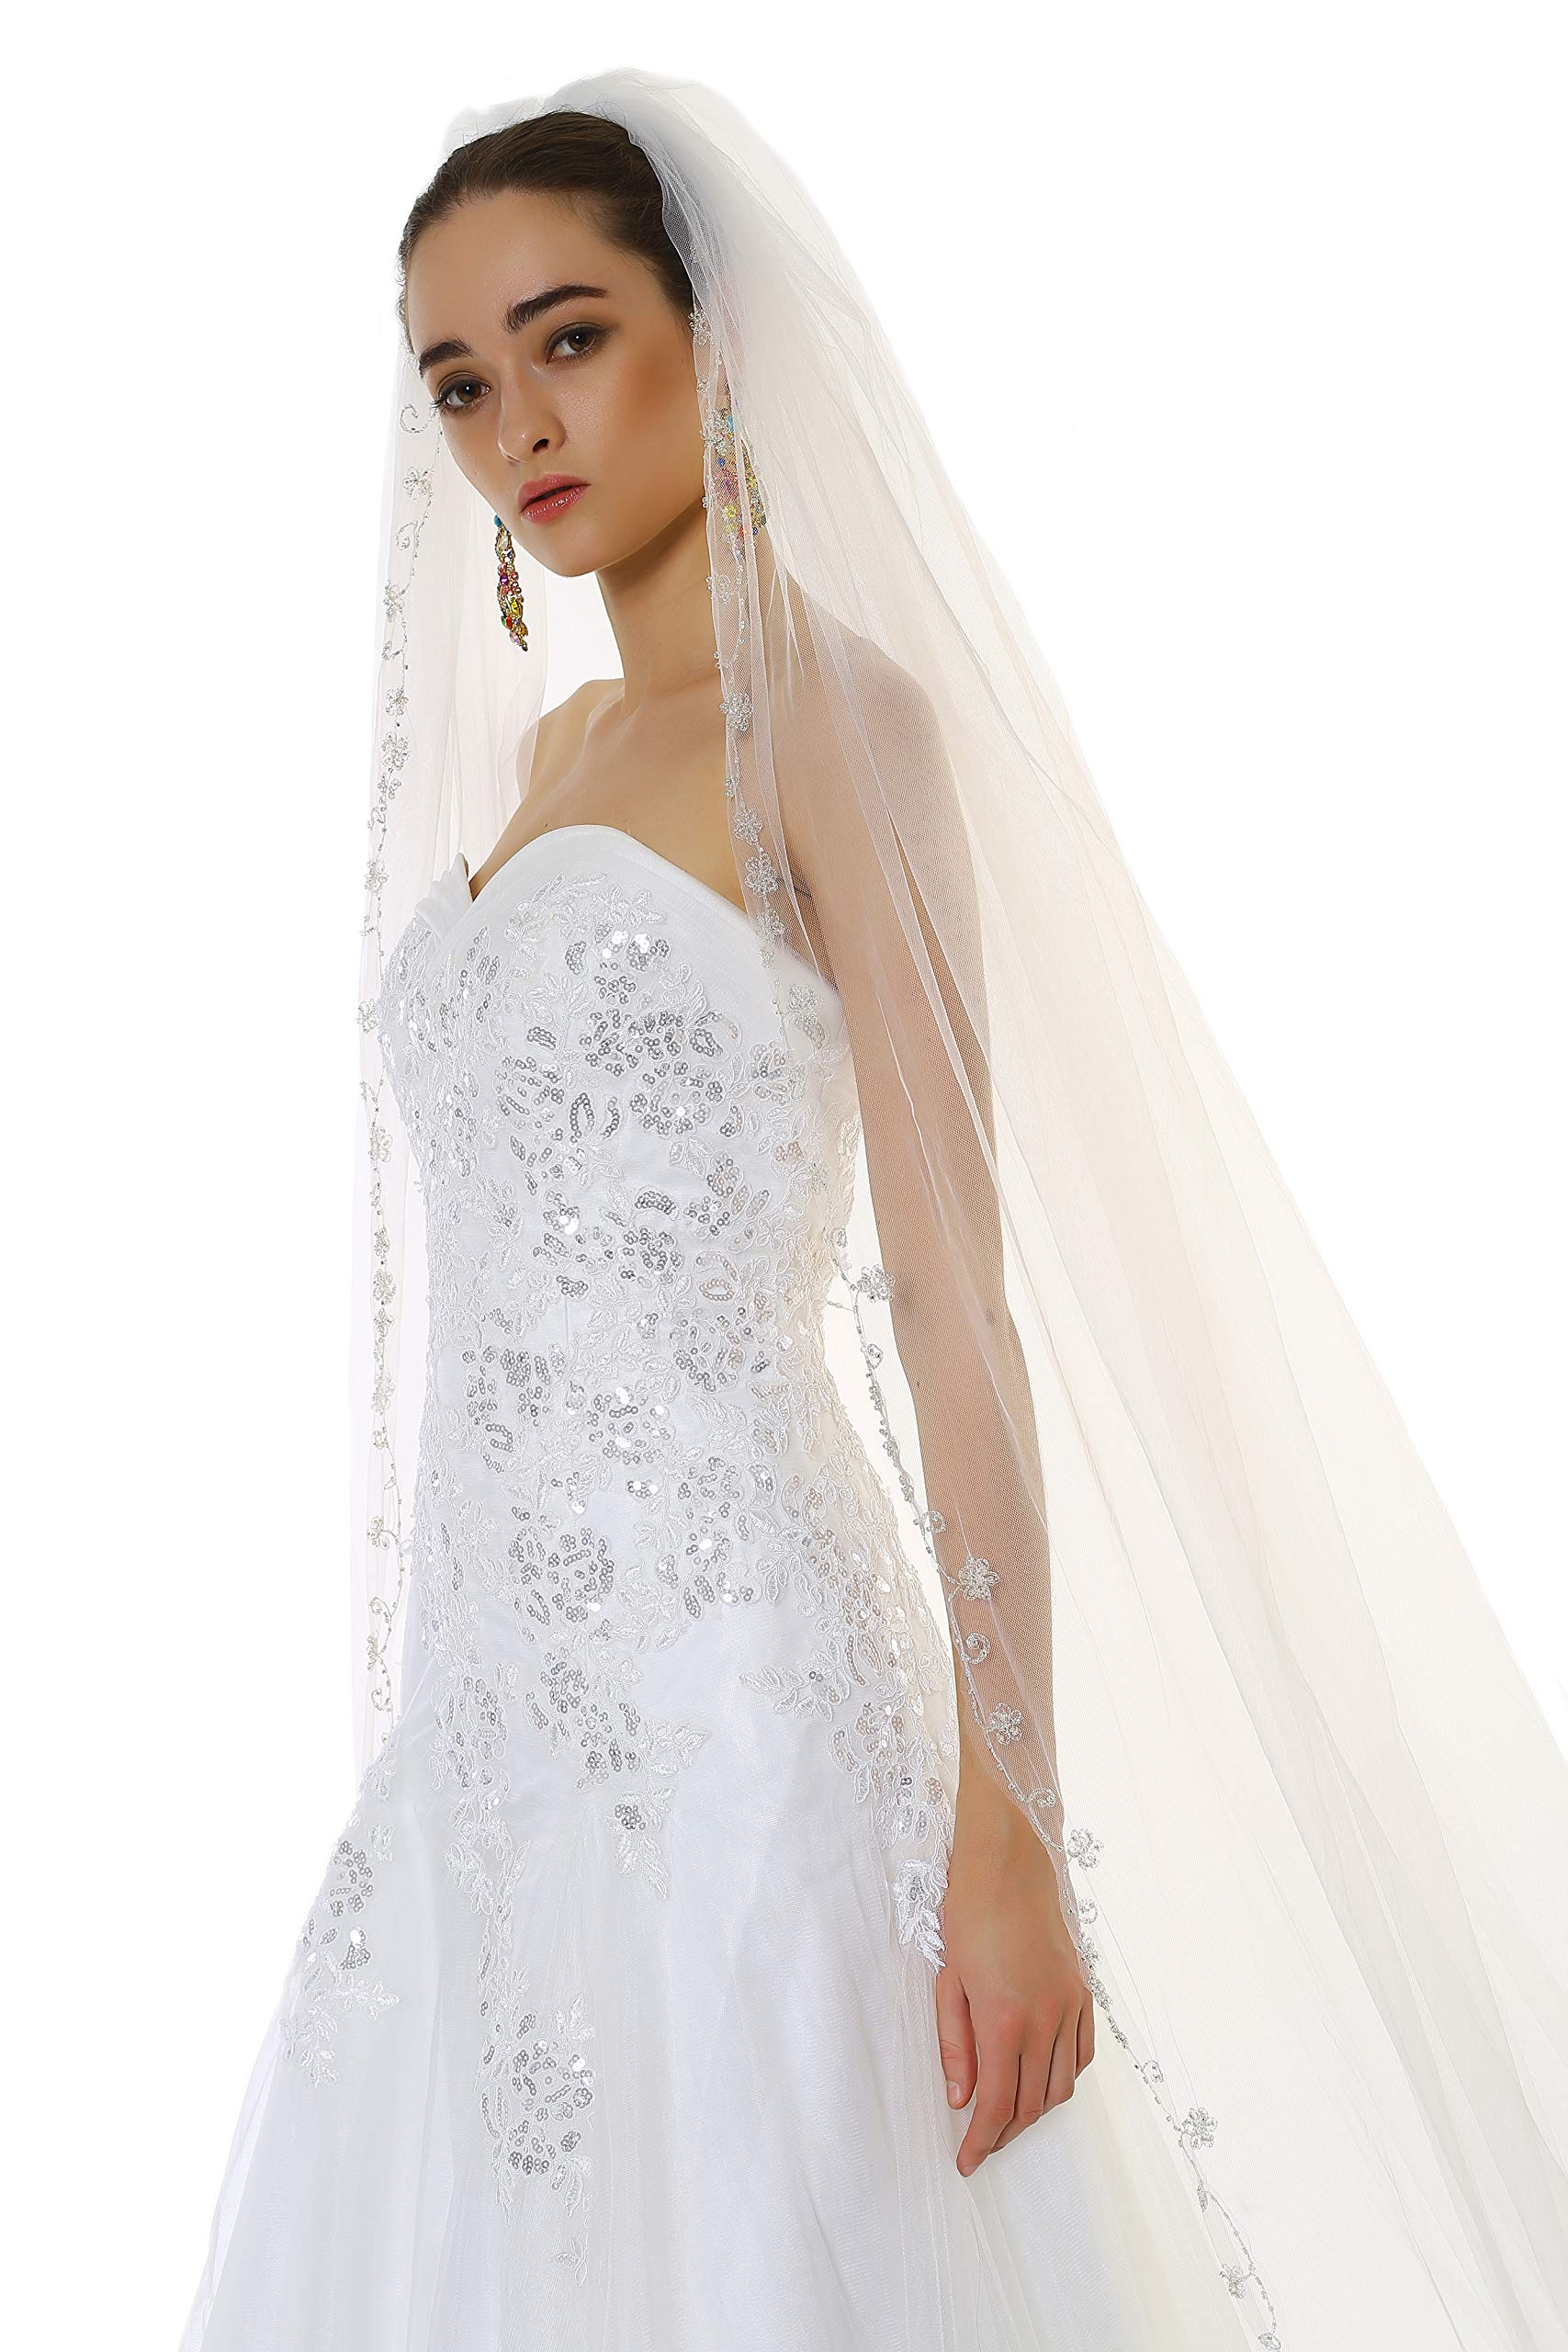 Passat Champagne 1 Tier 2M Floral Beaded Scallop Edge Cathedral Bridal Veil wedding veils with crystal 224